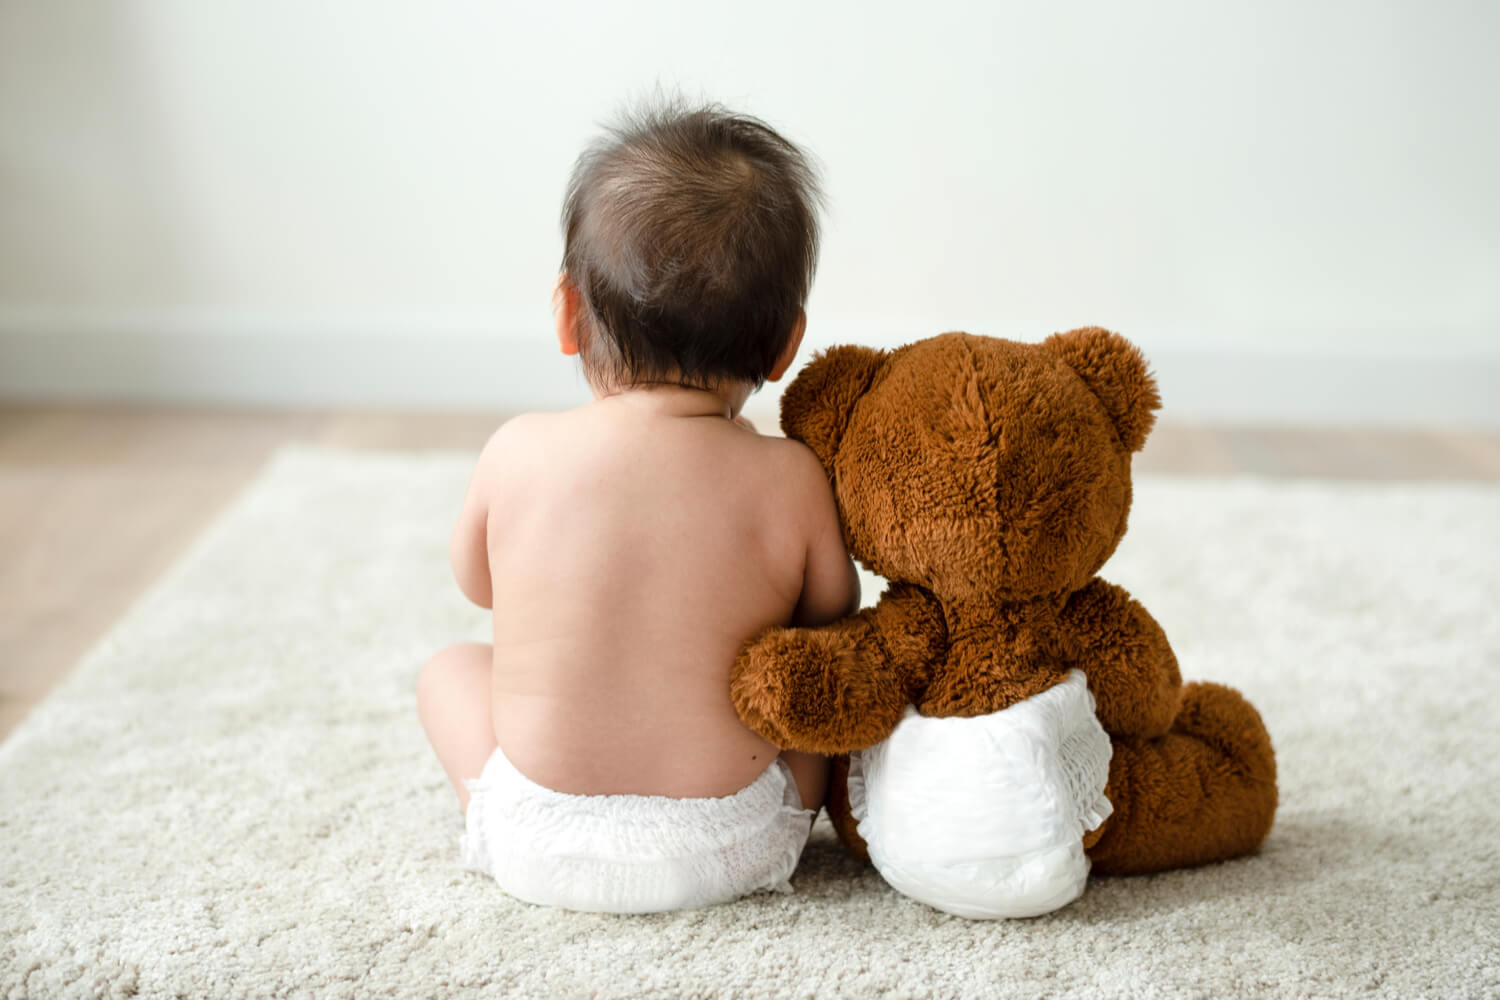 How To Pick The Best Diaper To Ensure Your Baby's Good Health